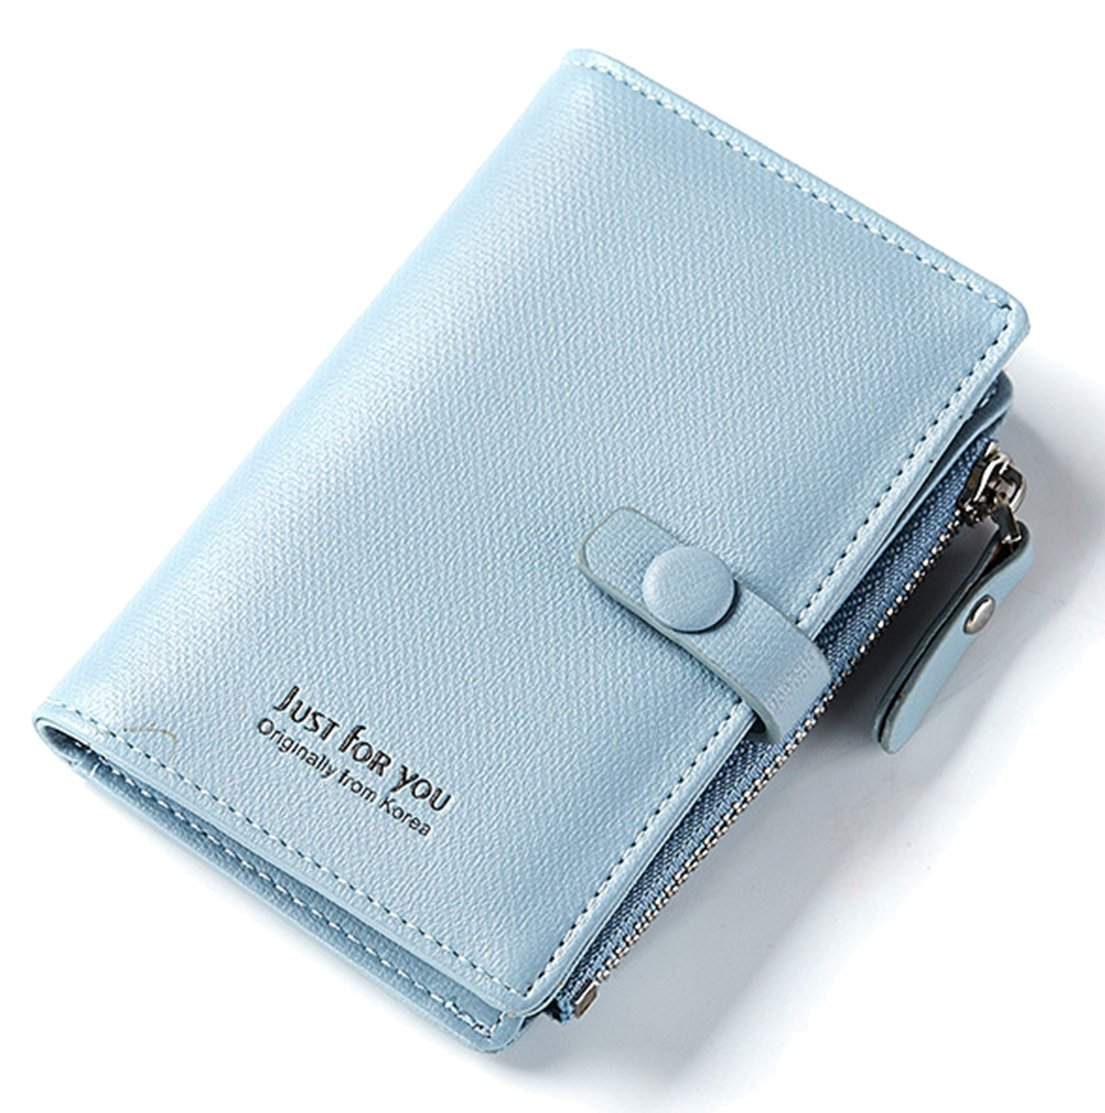 FEMAROLY Women's Holding Wallet Key Package Buckle Multi-Function Short Keychain Multi-Card Holder Purse for Women Blue